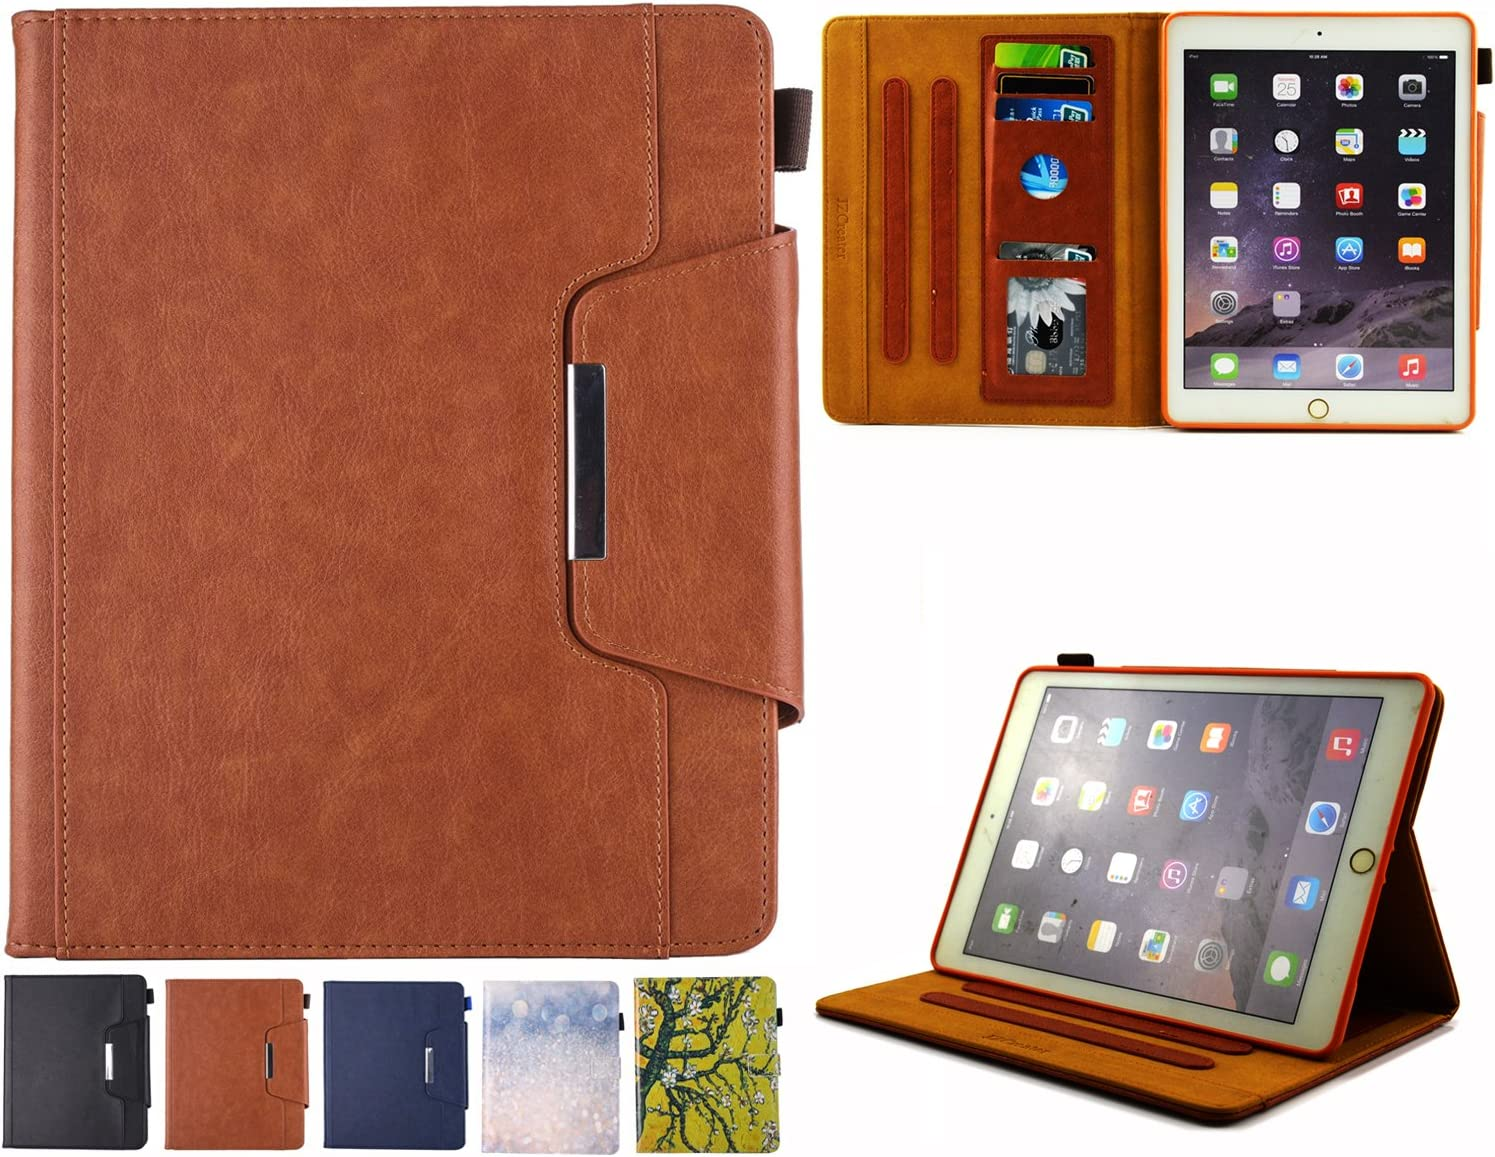 iPad 9.7 Case 2018/2017, iPad Air/Air 2 Case - JZCreater Folio Stand Multi Angle Viewing Wallet Case Cover with Auto Sleep/Wake for New iPad 9.7 2017/2018, iPad Air 1/2, Brown